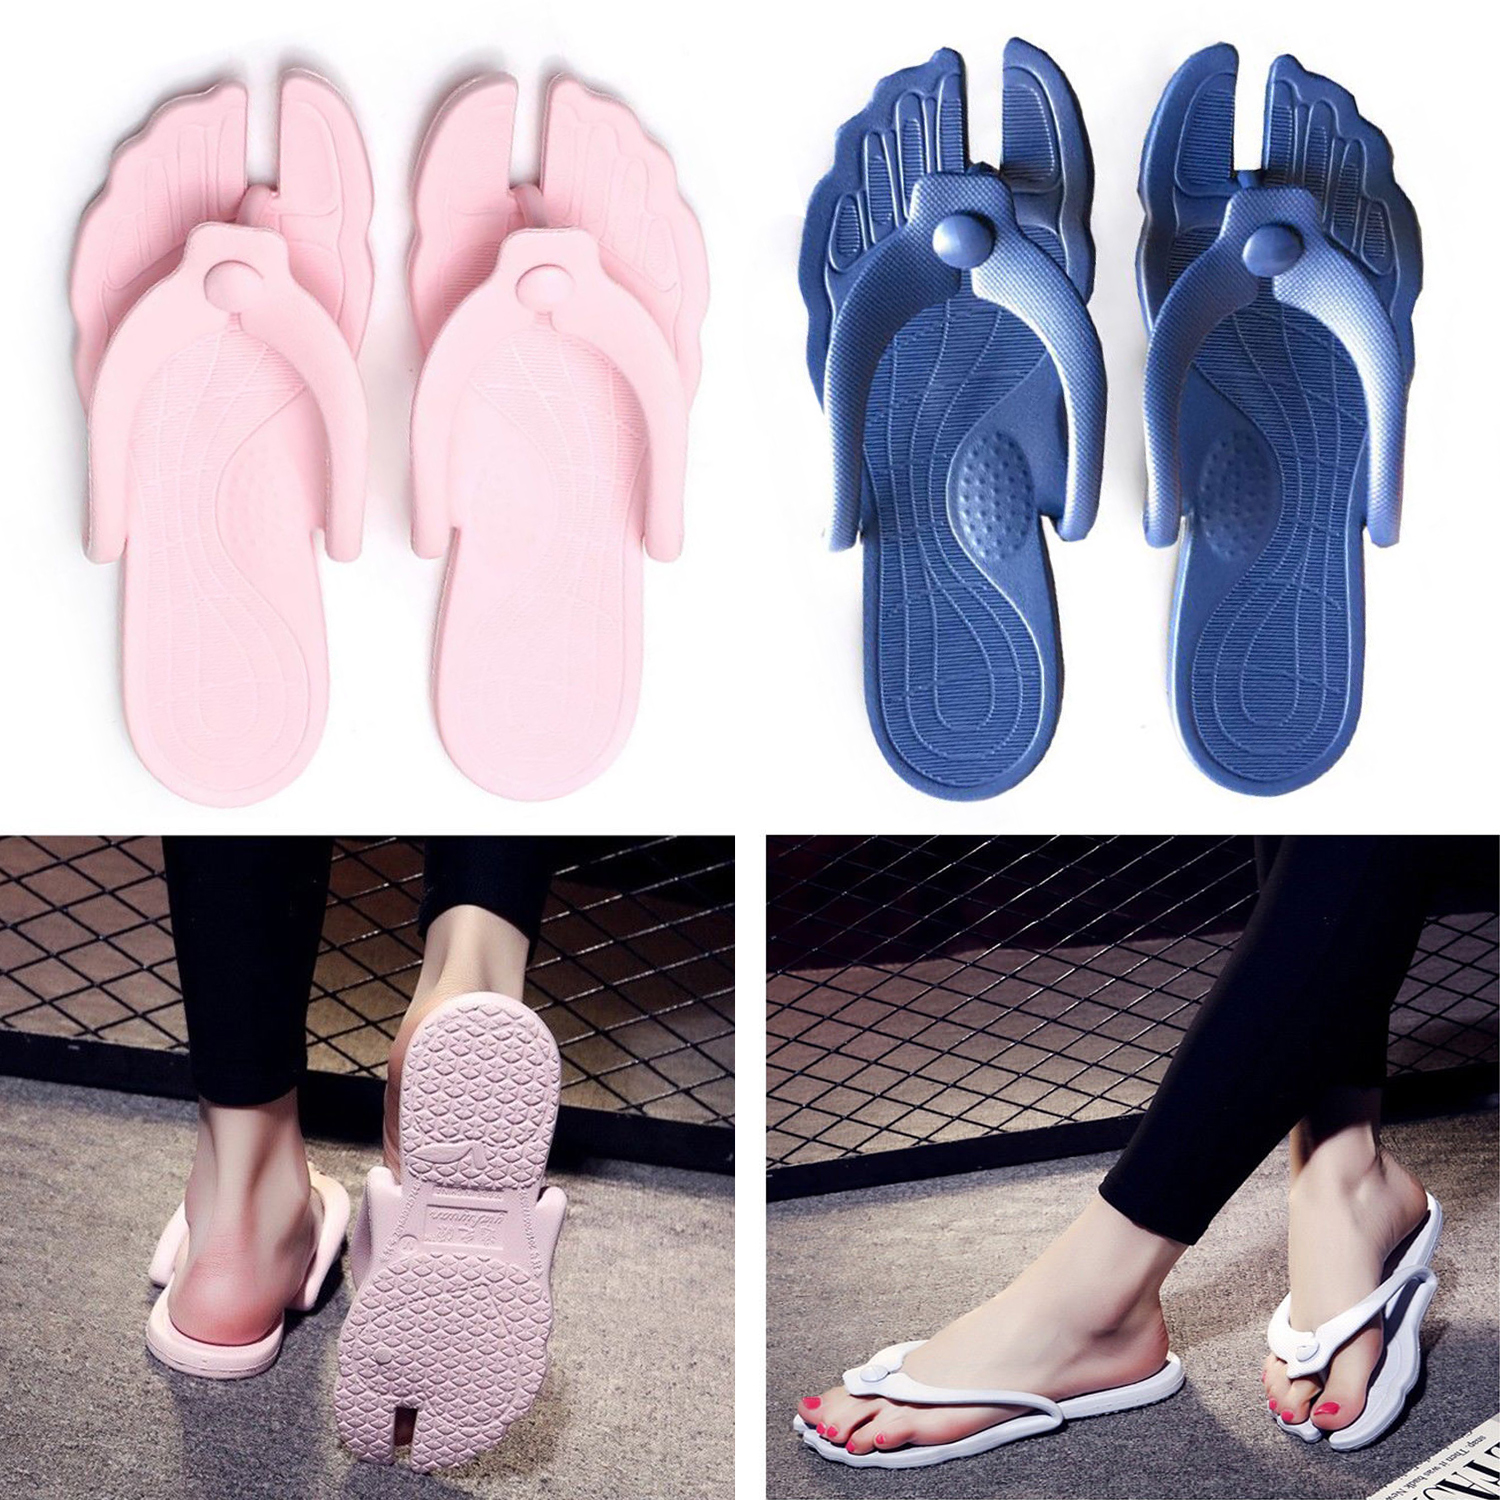 Women Foldable Sandals Summer Slippers Beach Flip Flops Ladies Unisex Flat Shoes